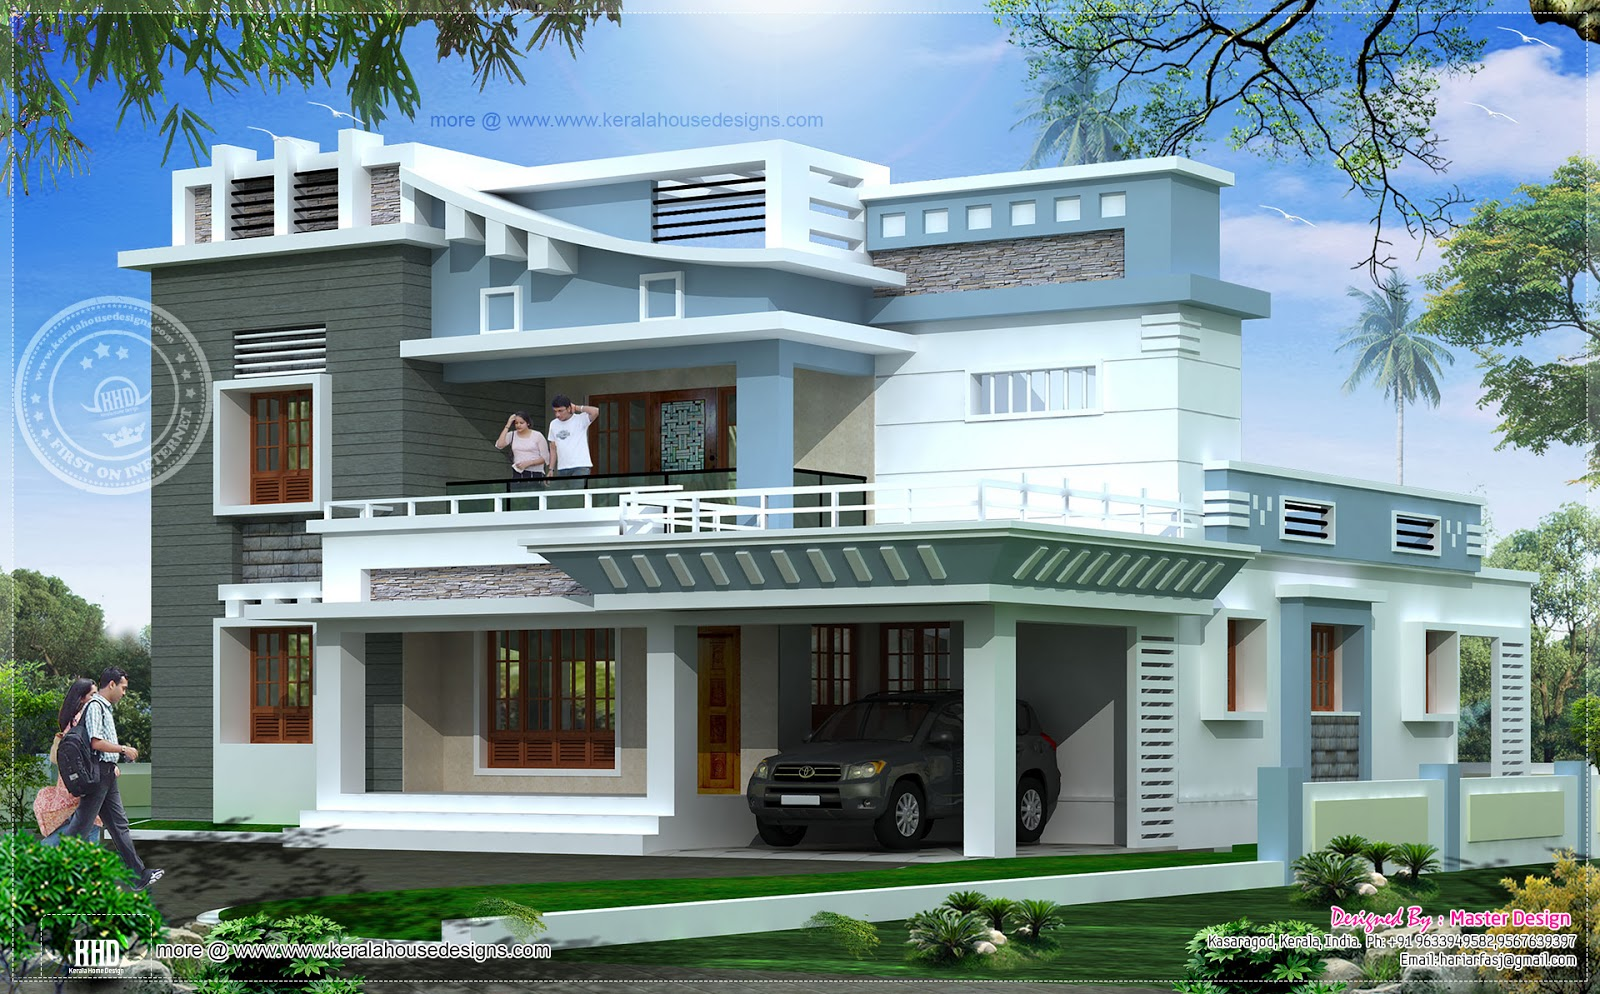 Sample Front Elevation For Small N Houses : Square feet exterior home elevation house design plans